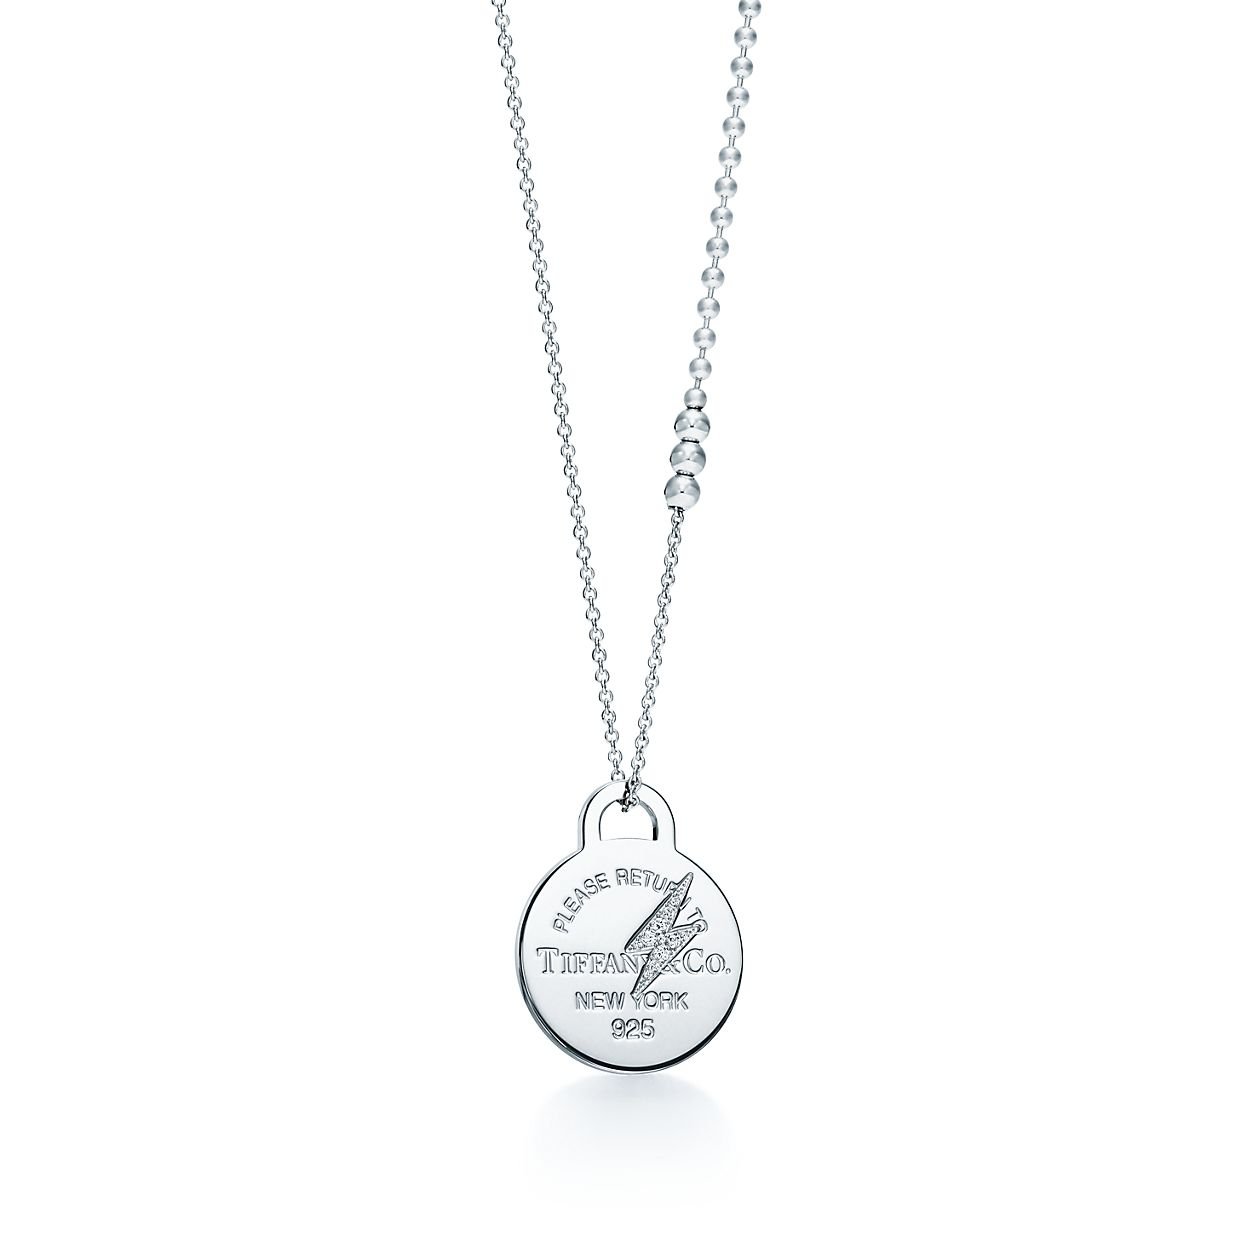 etched sundial necklace photo